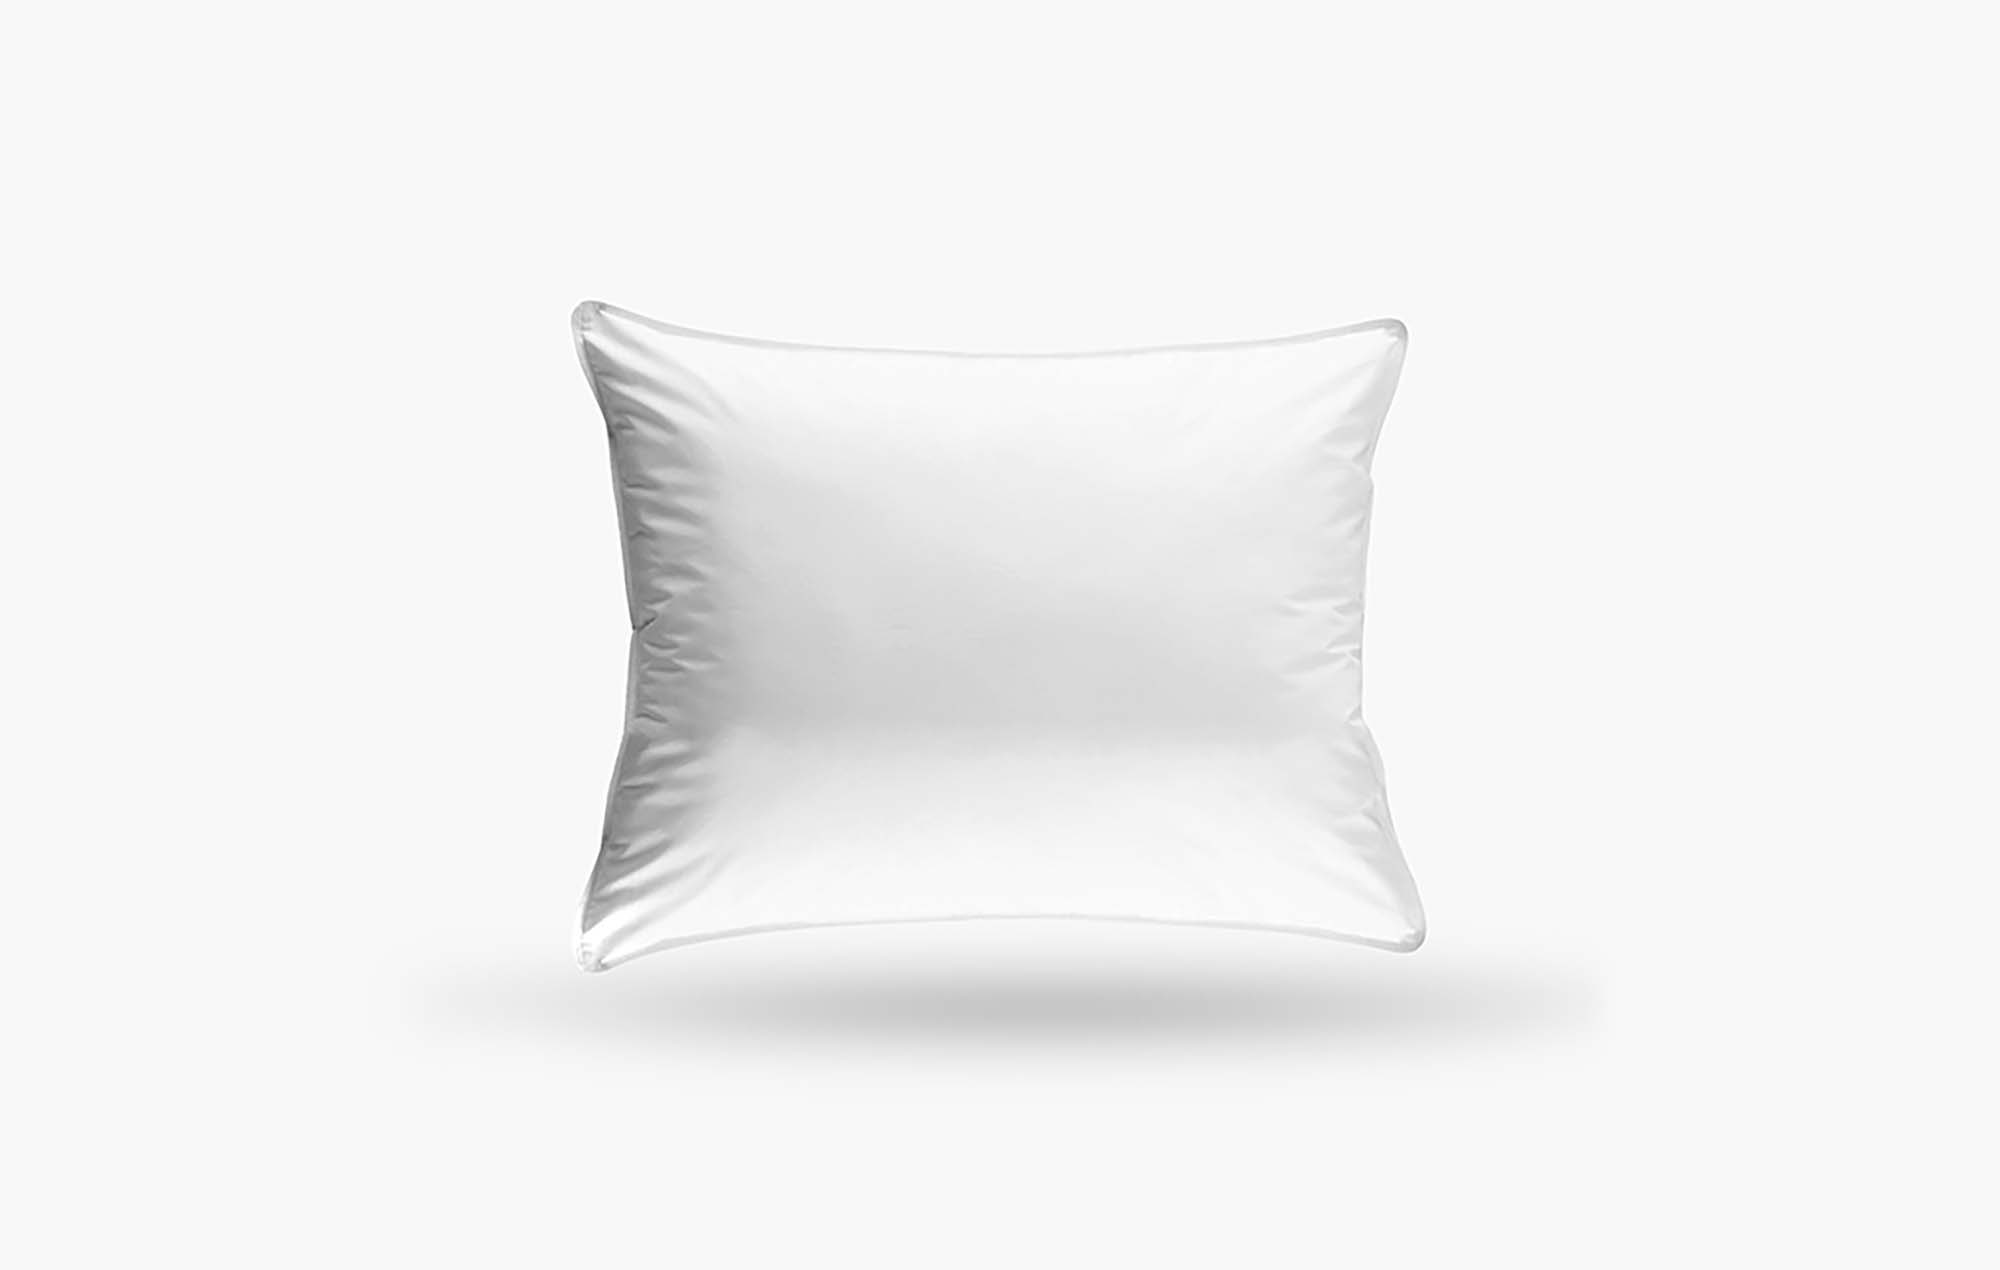 Rectangle Pillow Mockup 3